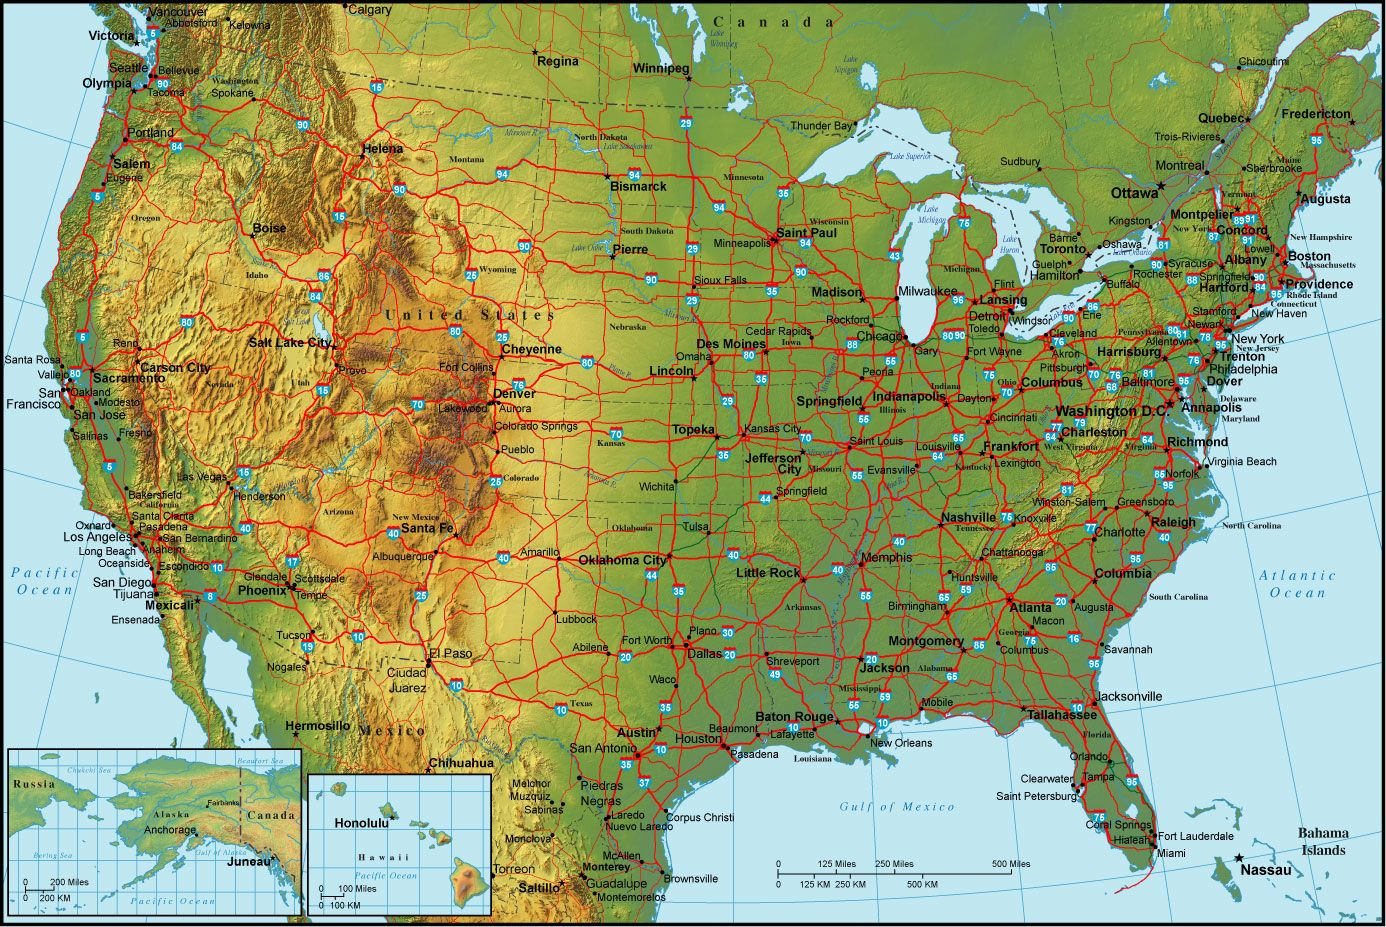 Detailed Map Of The United States Detailed topographical map of the USA. The USA detailed